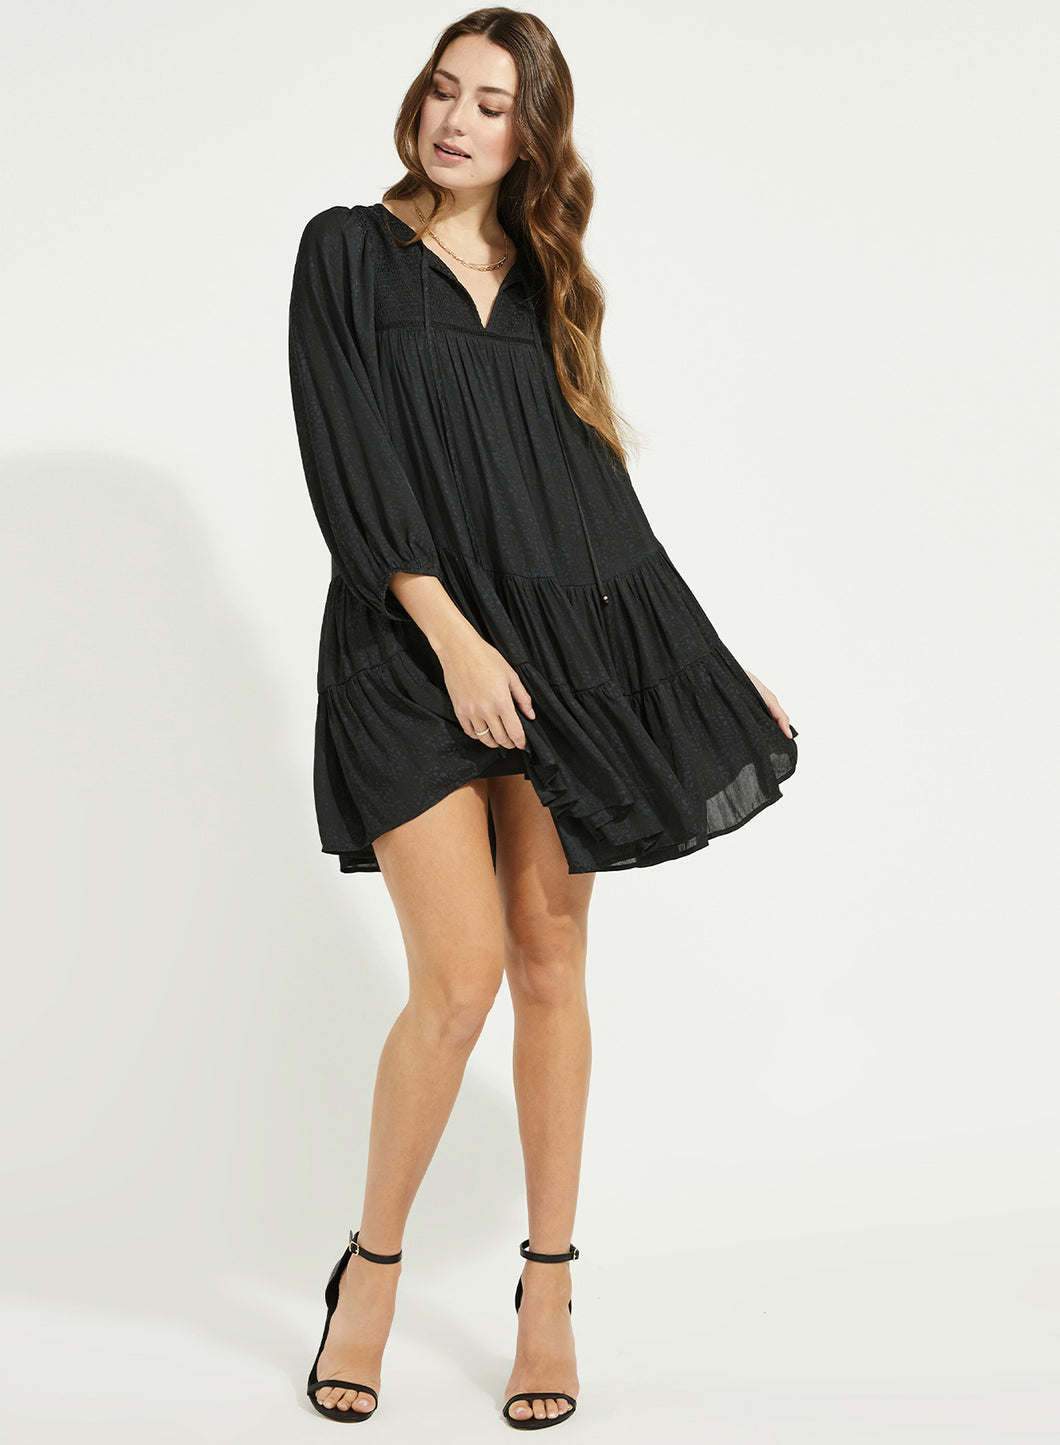 Candece Black Tier Dress